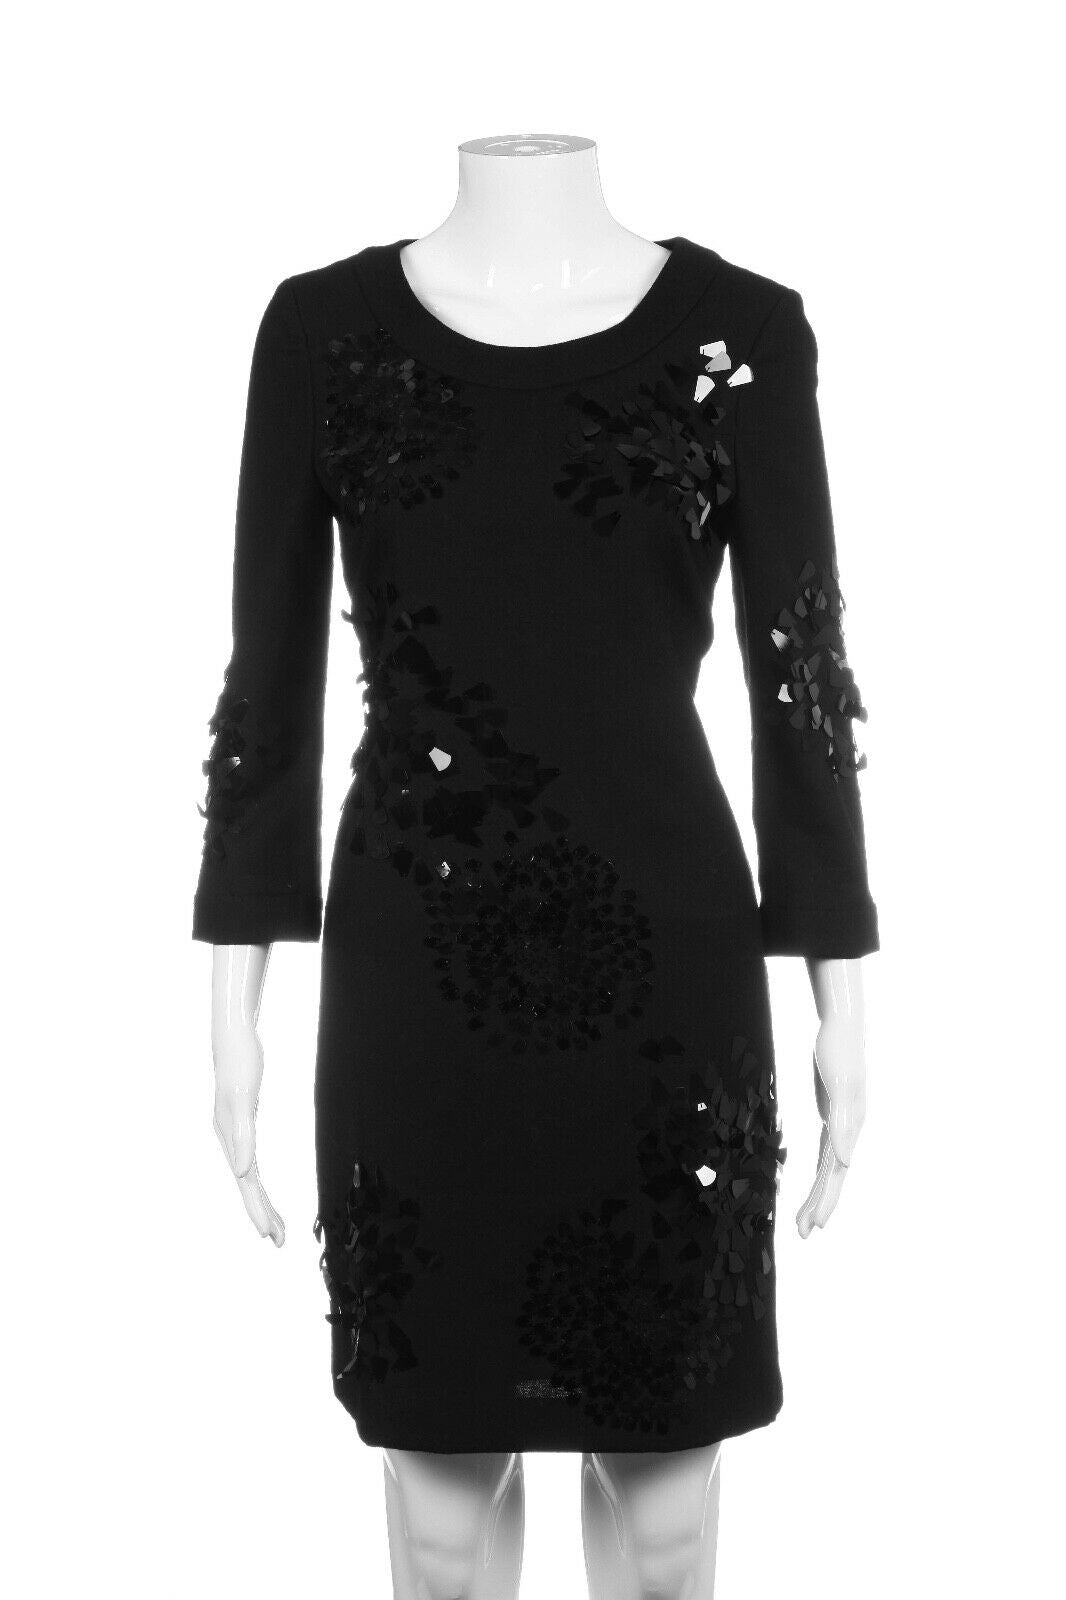 TORY BURCH Dress Wool Black Sequin Appliqué Size 2